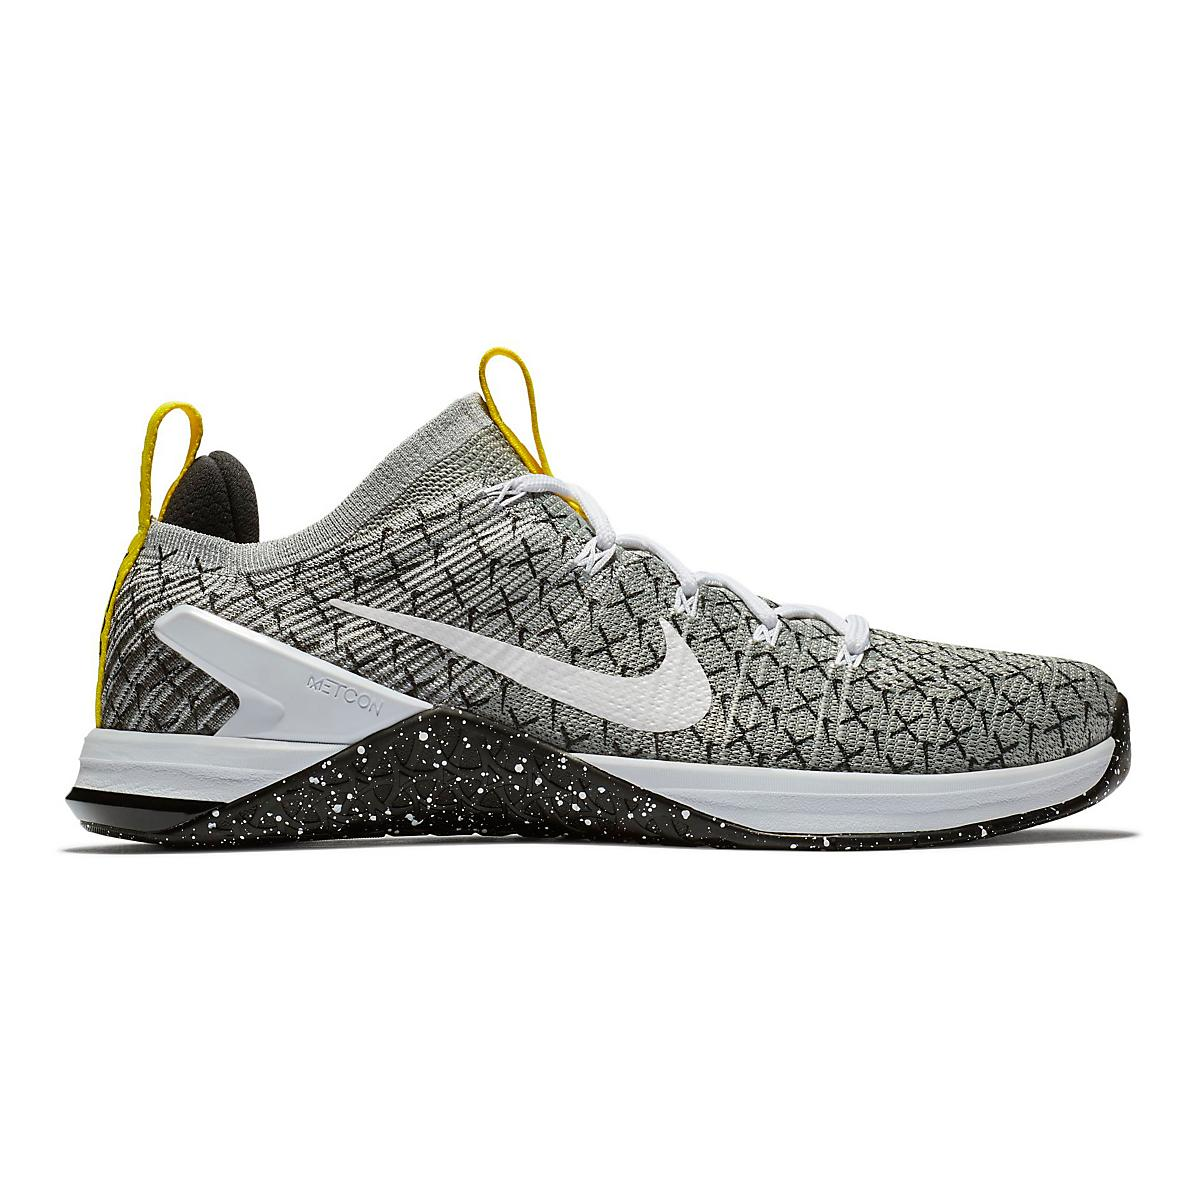 separation shoes b3373 f0547 Mens Nike Metcon DSX Flyknit 2 JDQ Cross Training Shoe at Road Runner Sports